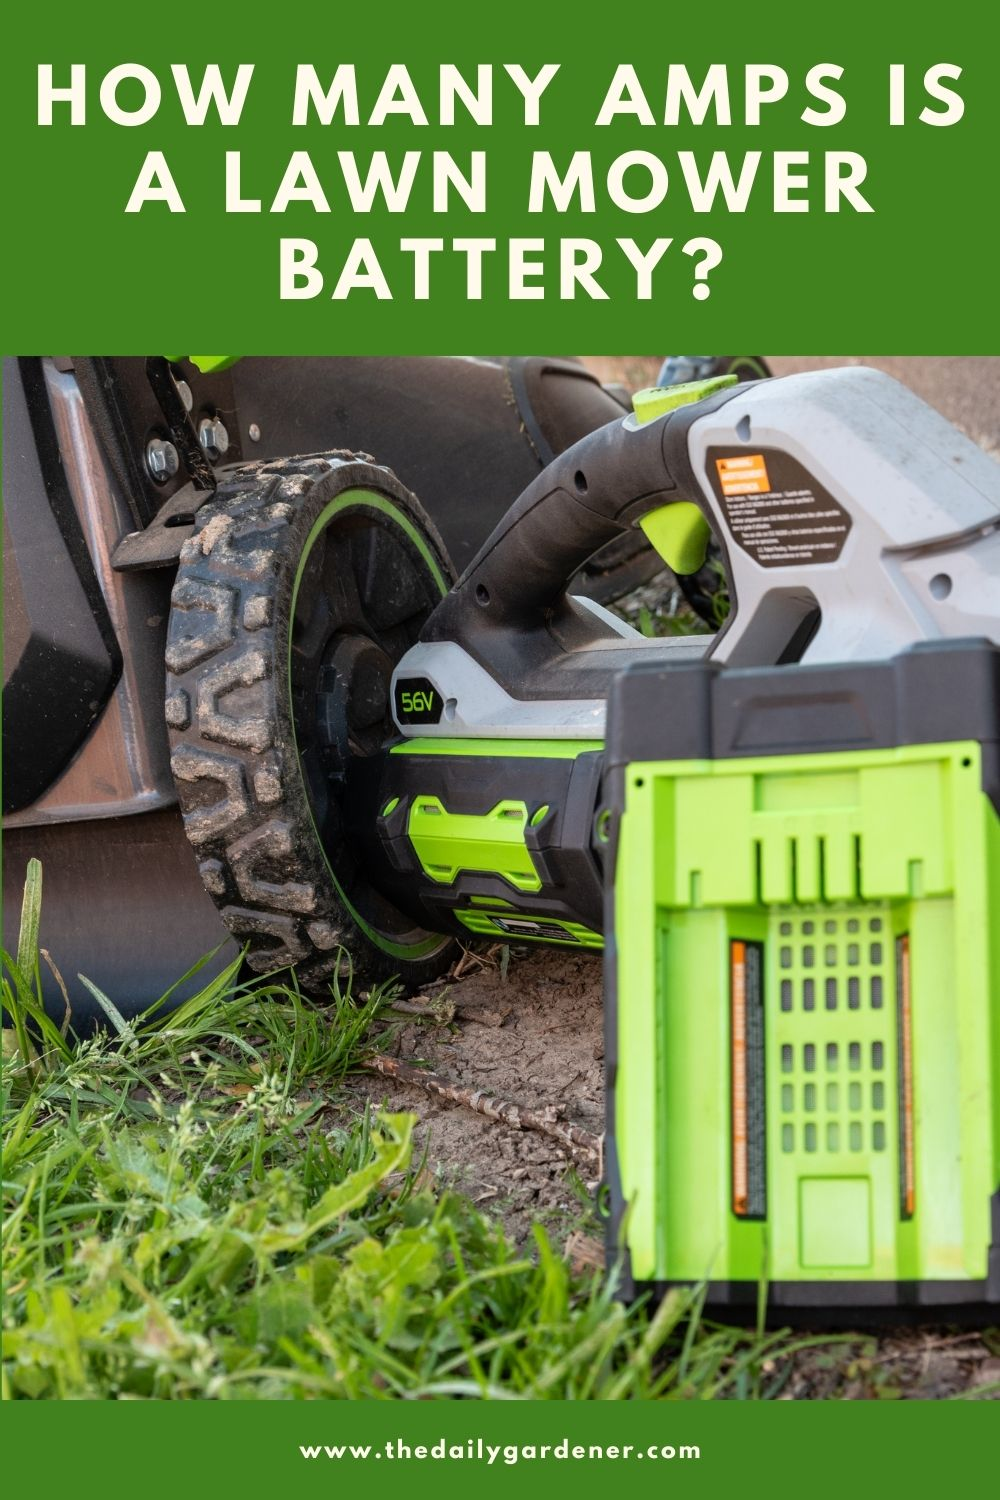 How Many Amps is a Lawn Mower Battery 1